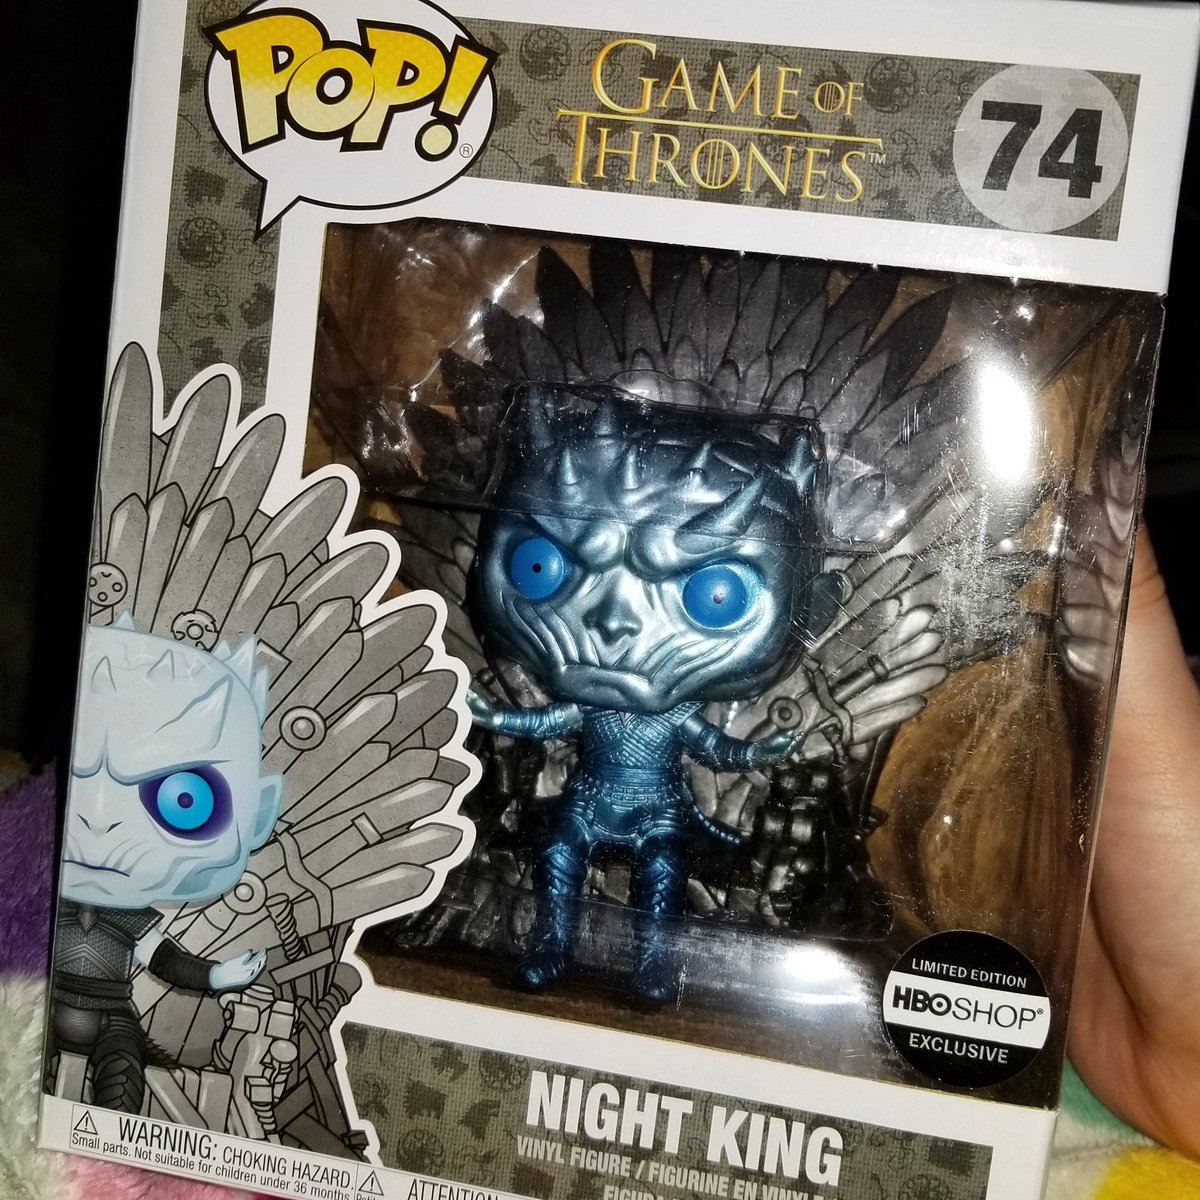 Now that's a sweet mail call.   #funkopops #funkoholic #funkopop #funkoaddict #GOT #gameofthrones #nightking #gameofthronespop #nightkingpop https://t.co/b4FwbOeZ6h